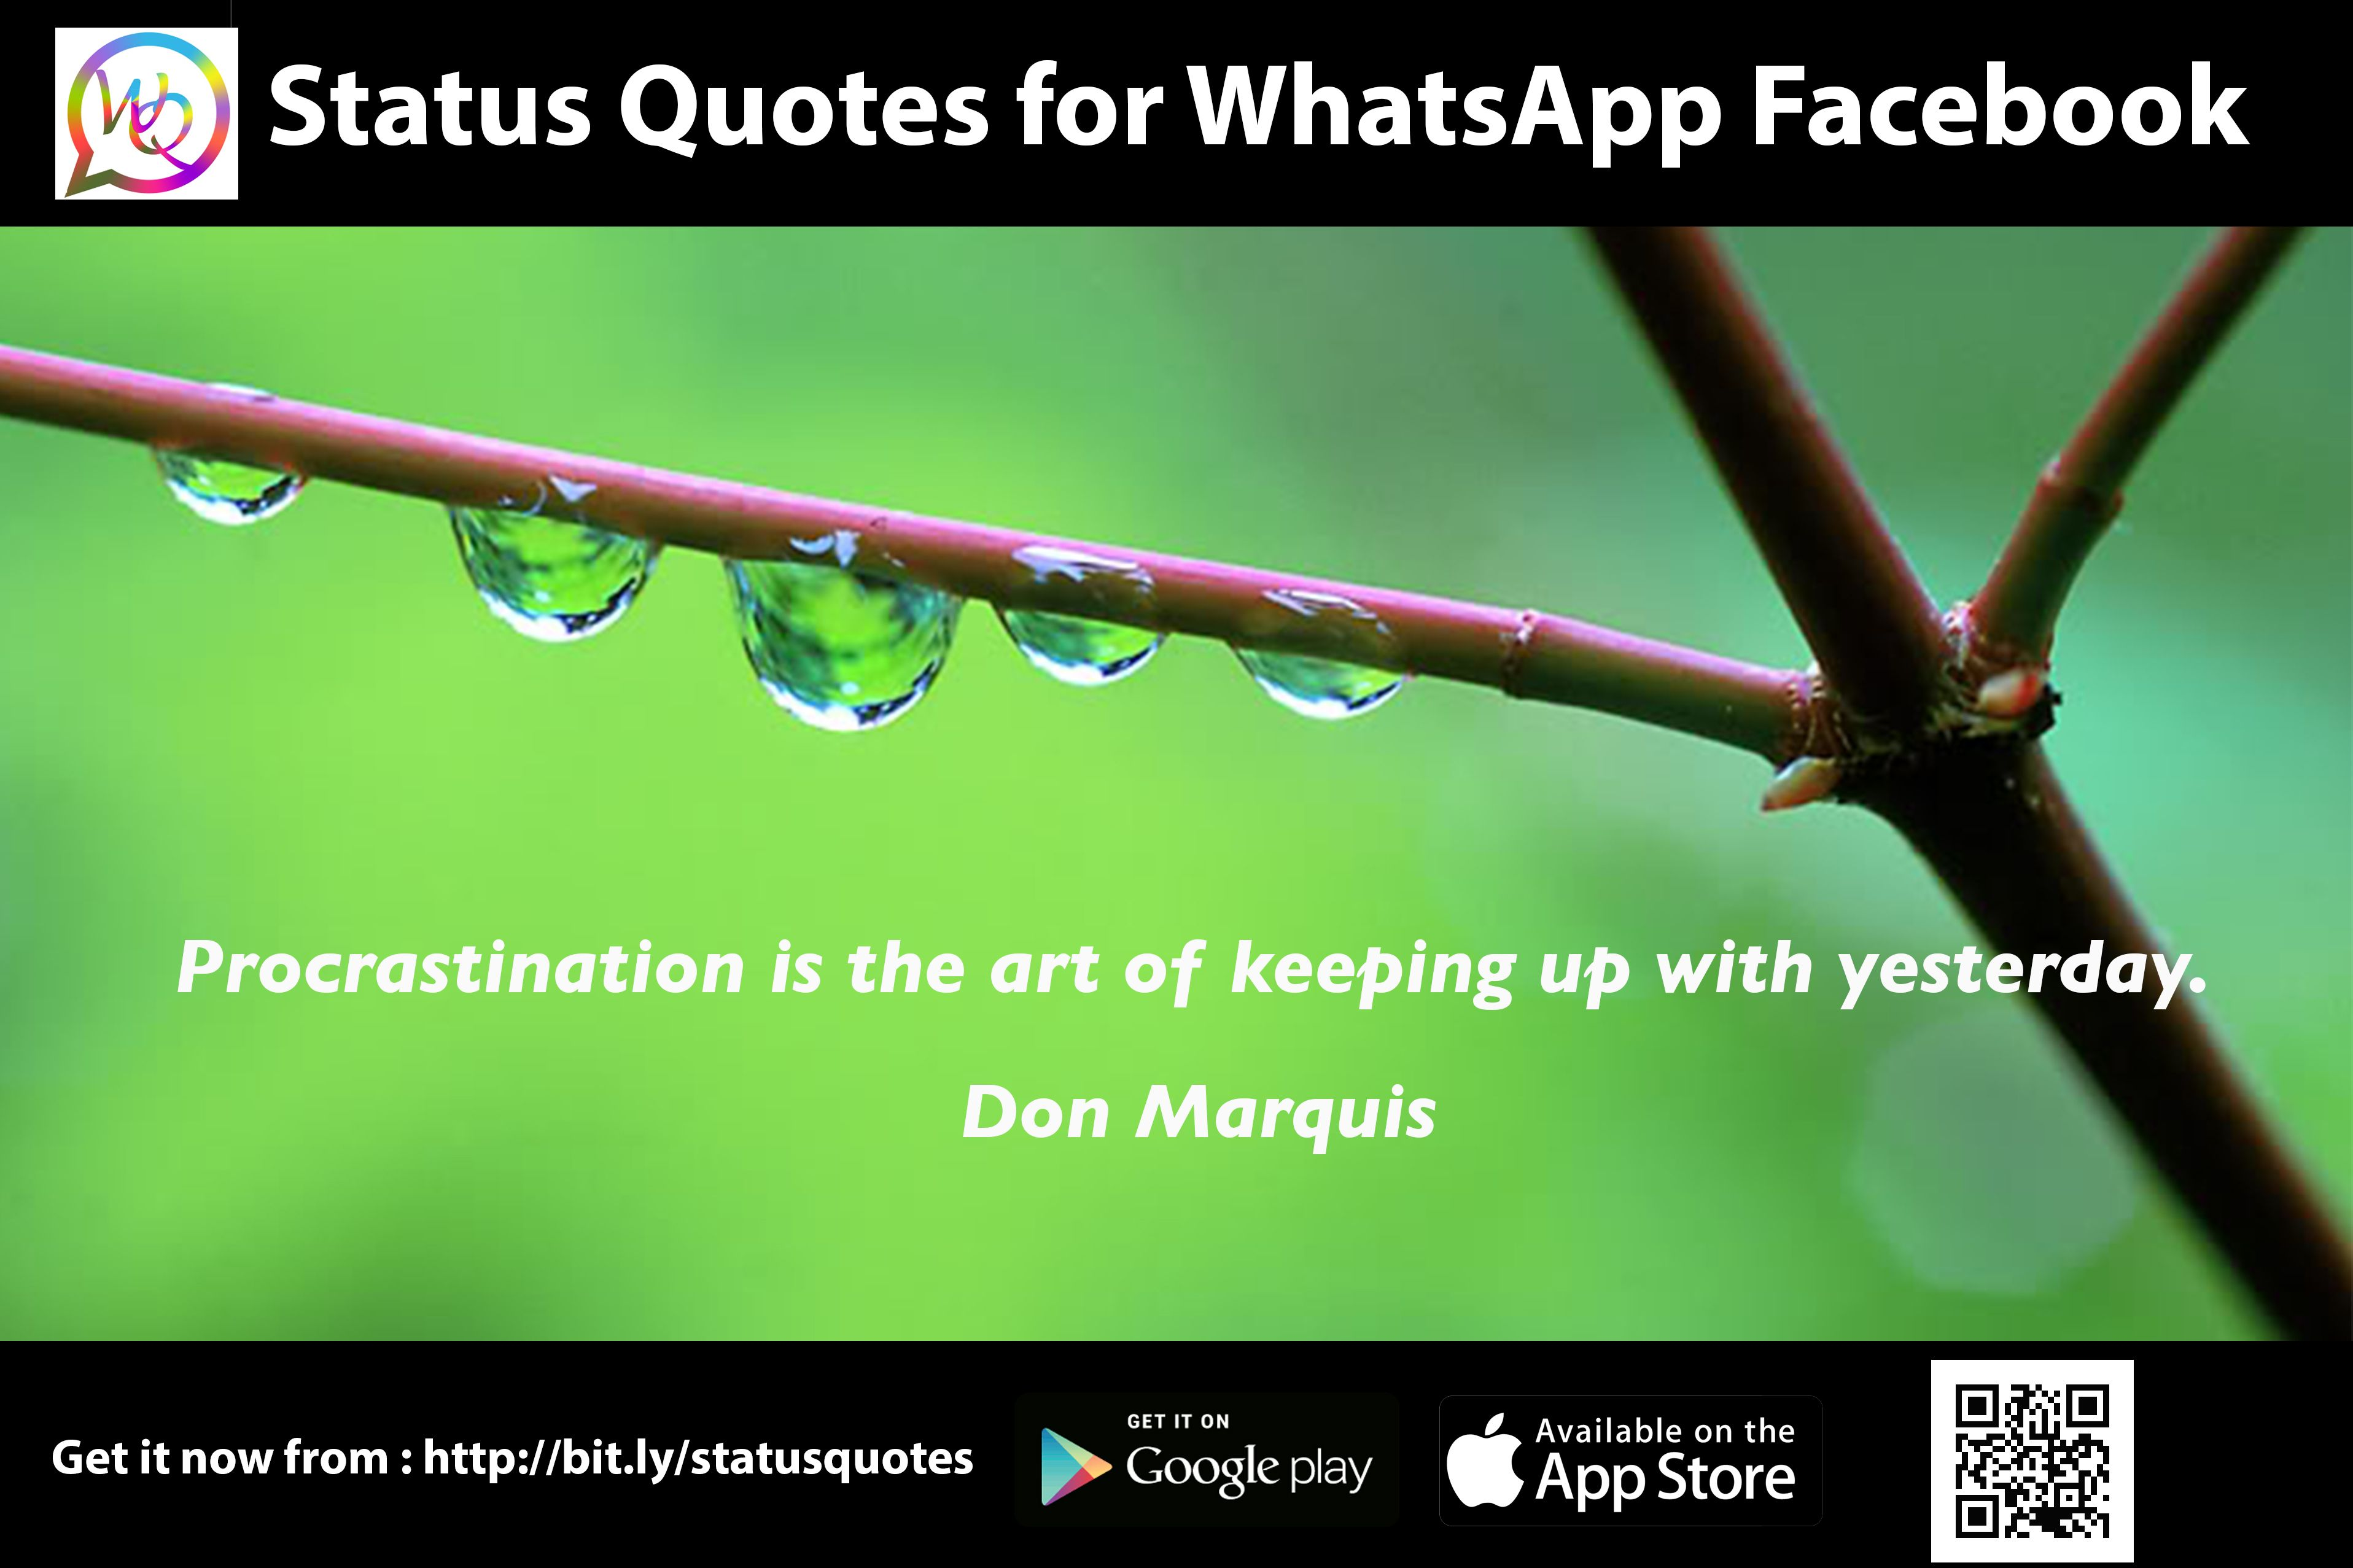 Procrastination is the art of keeping up with yesterday. - Don Marquis